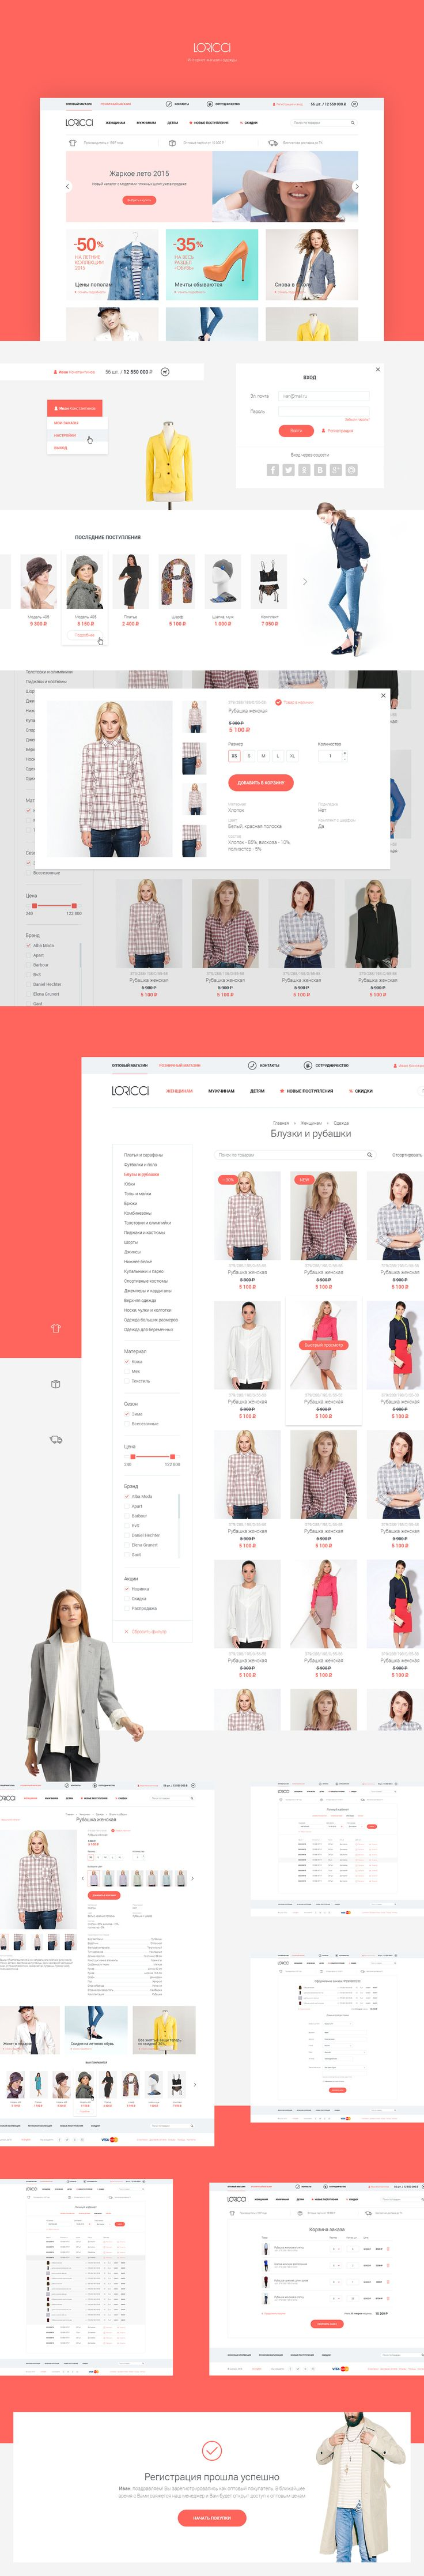 Clothing Ecommerce Site Design